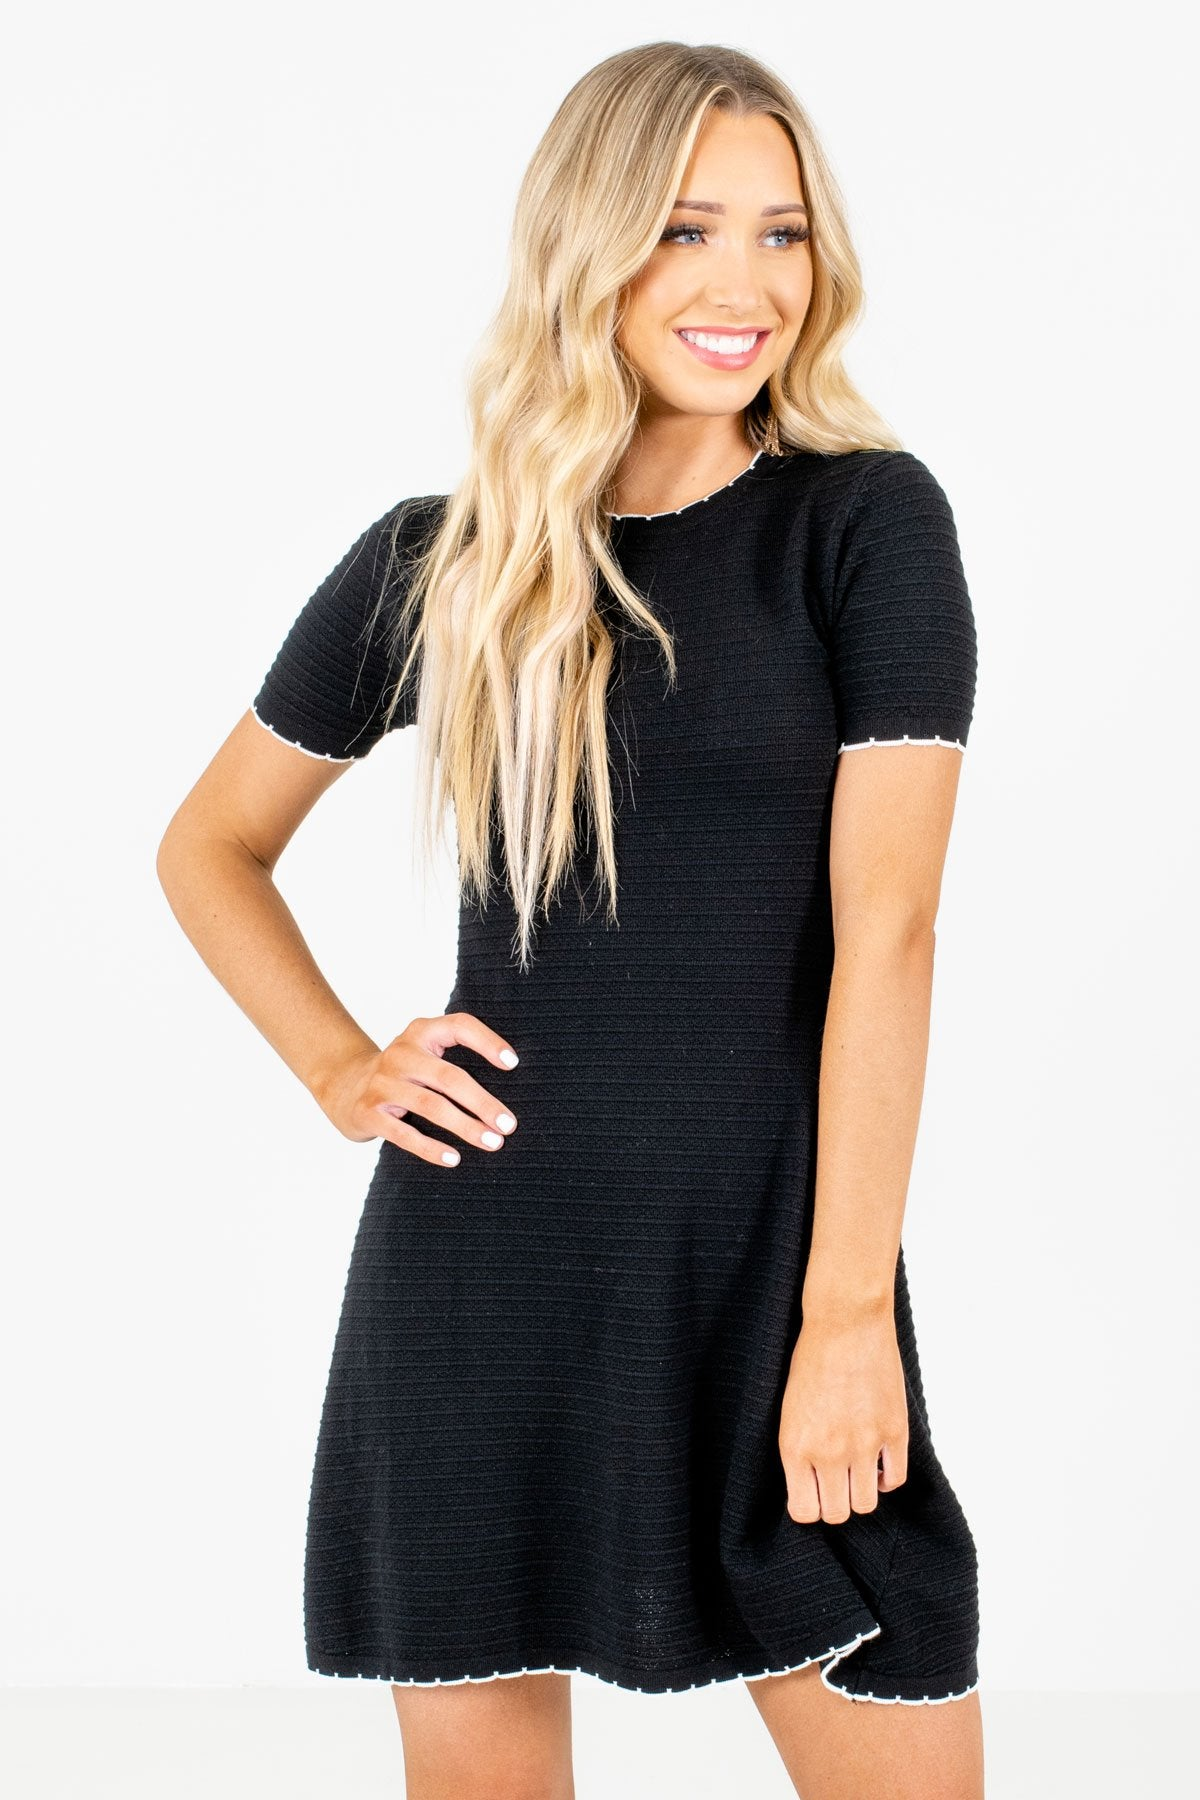 Black Mini Dress with White Lettuce-Edge Trim and Ribbed Material